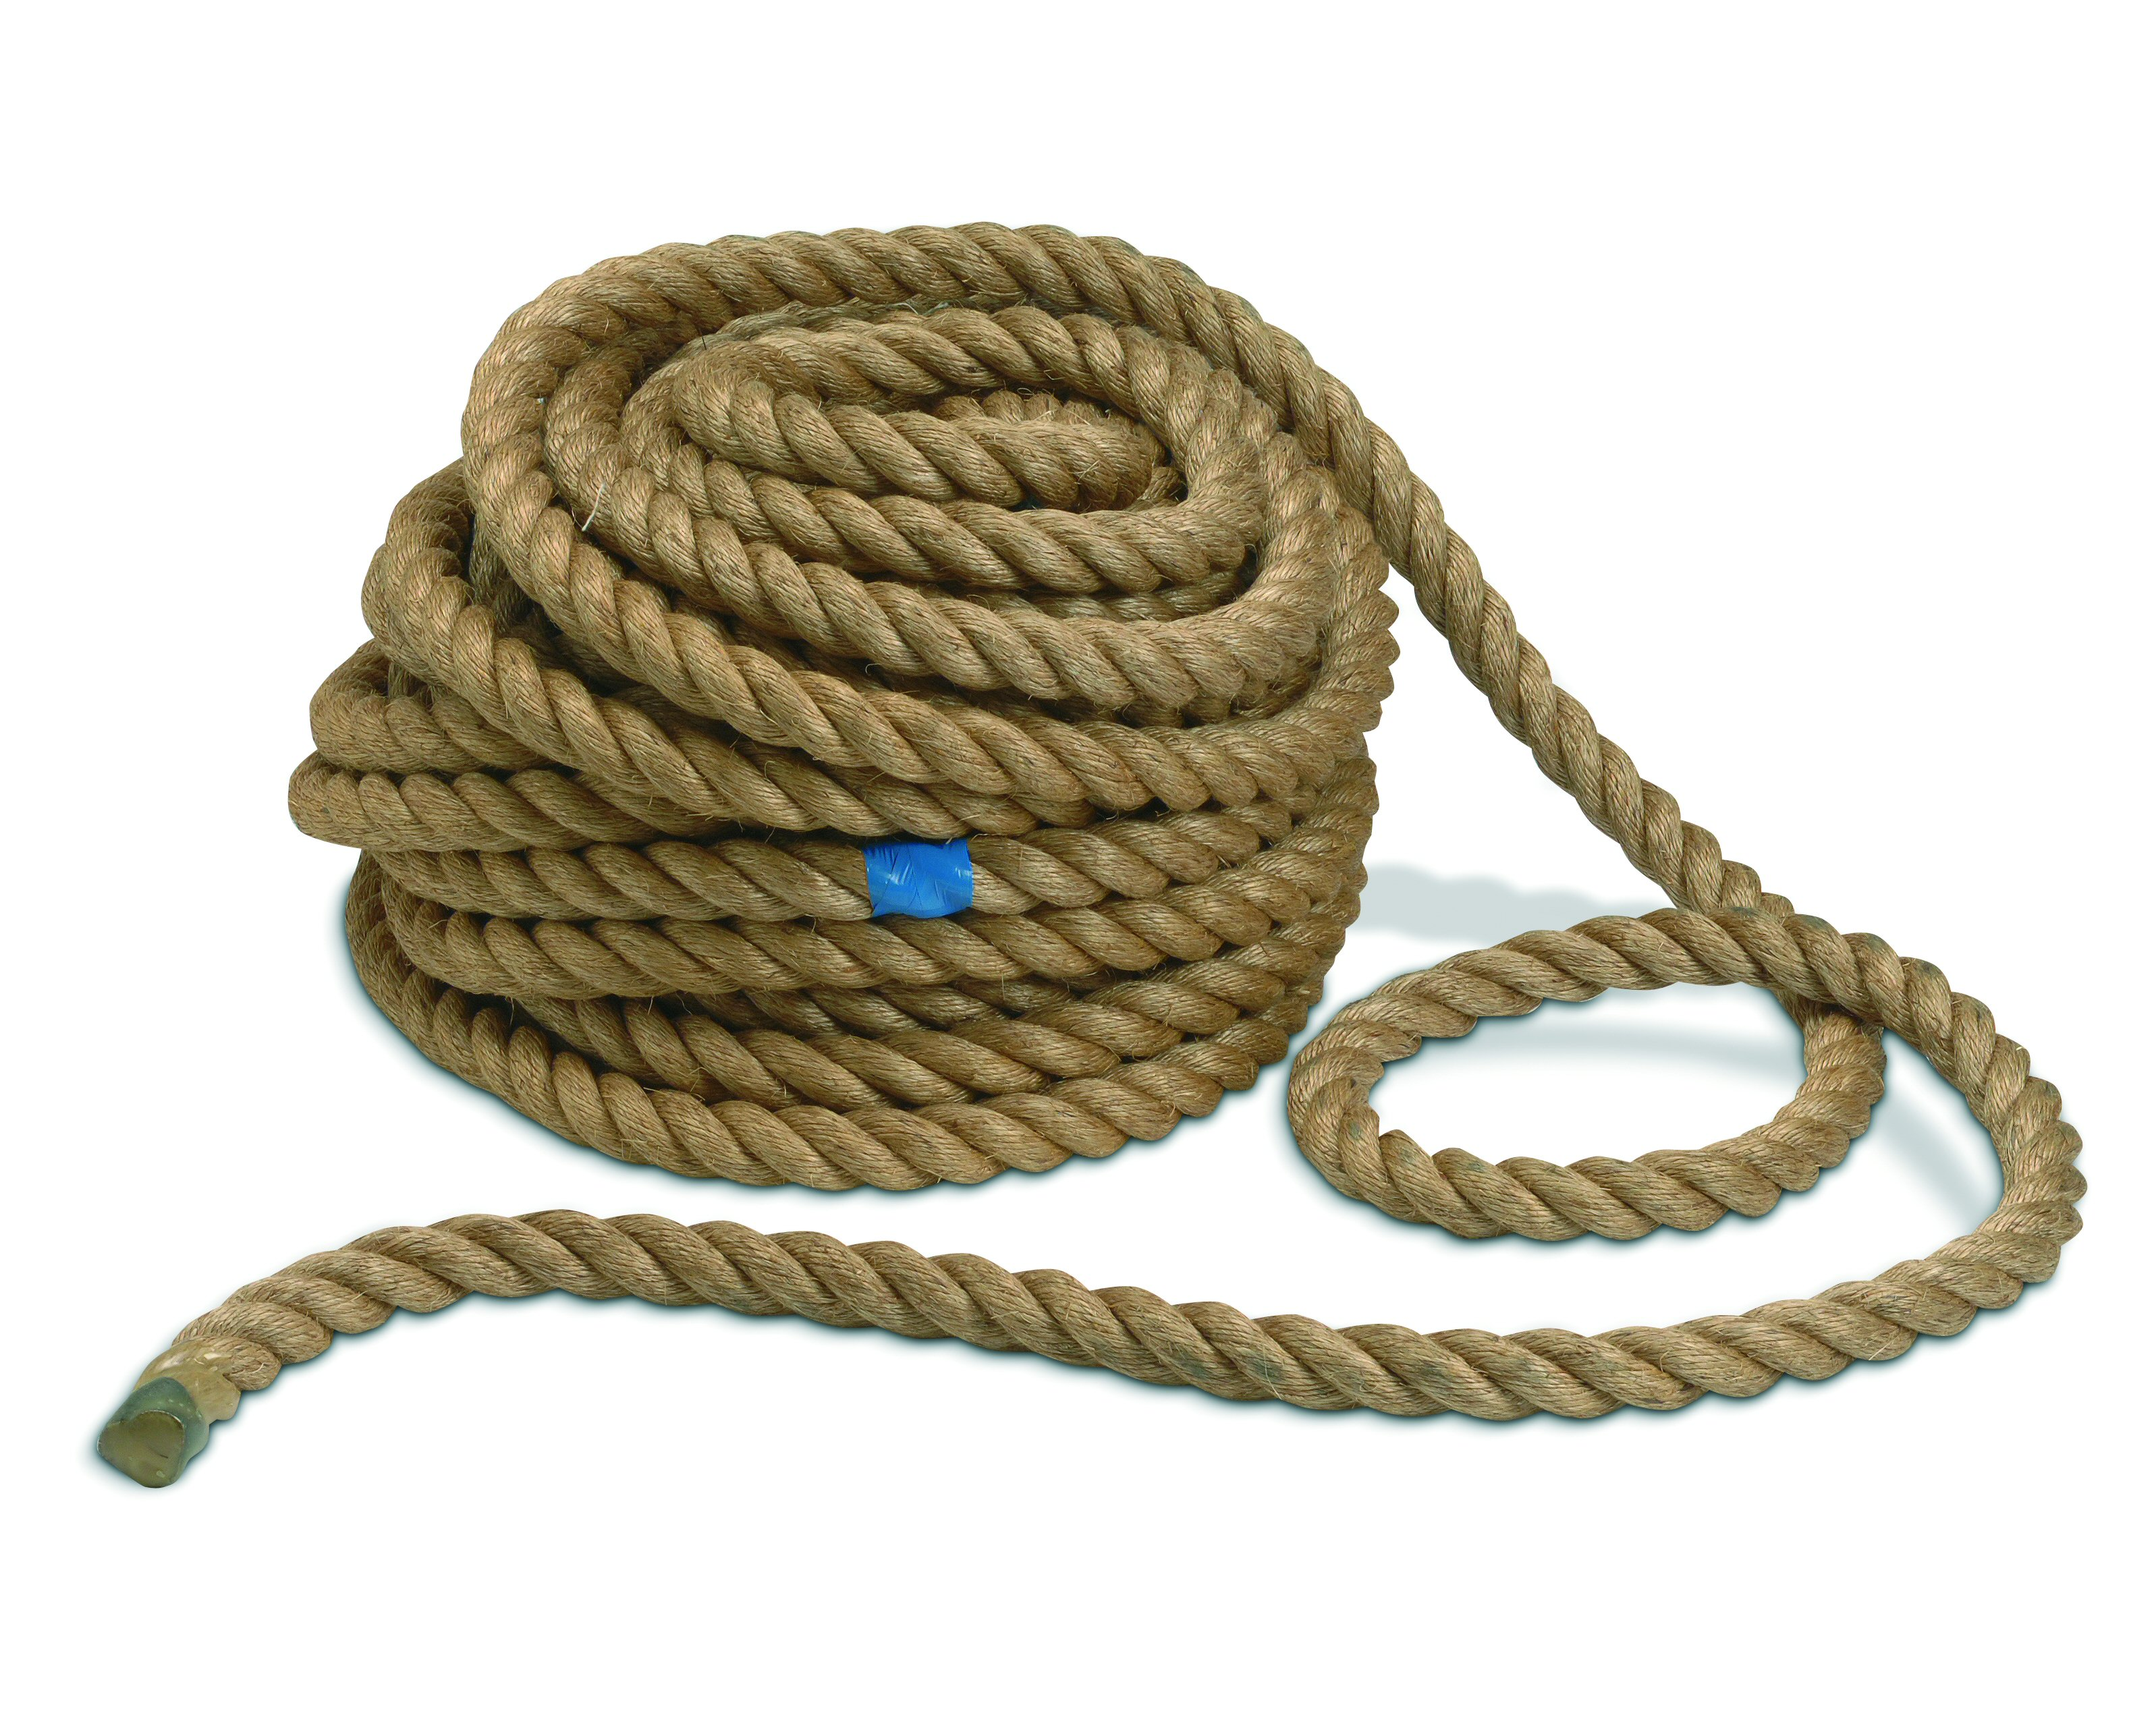 HQ Rope Wallpapers | File 1083.91Kb